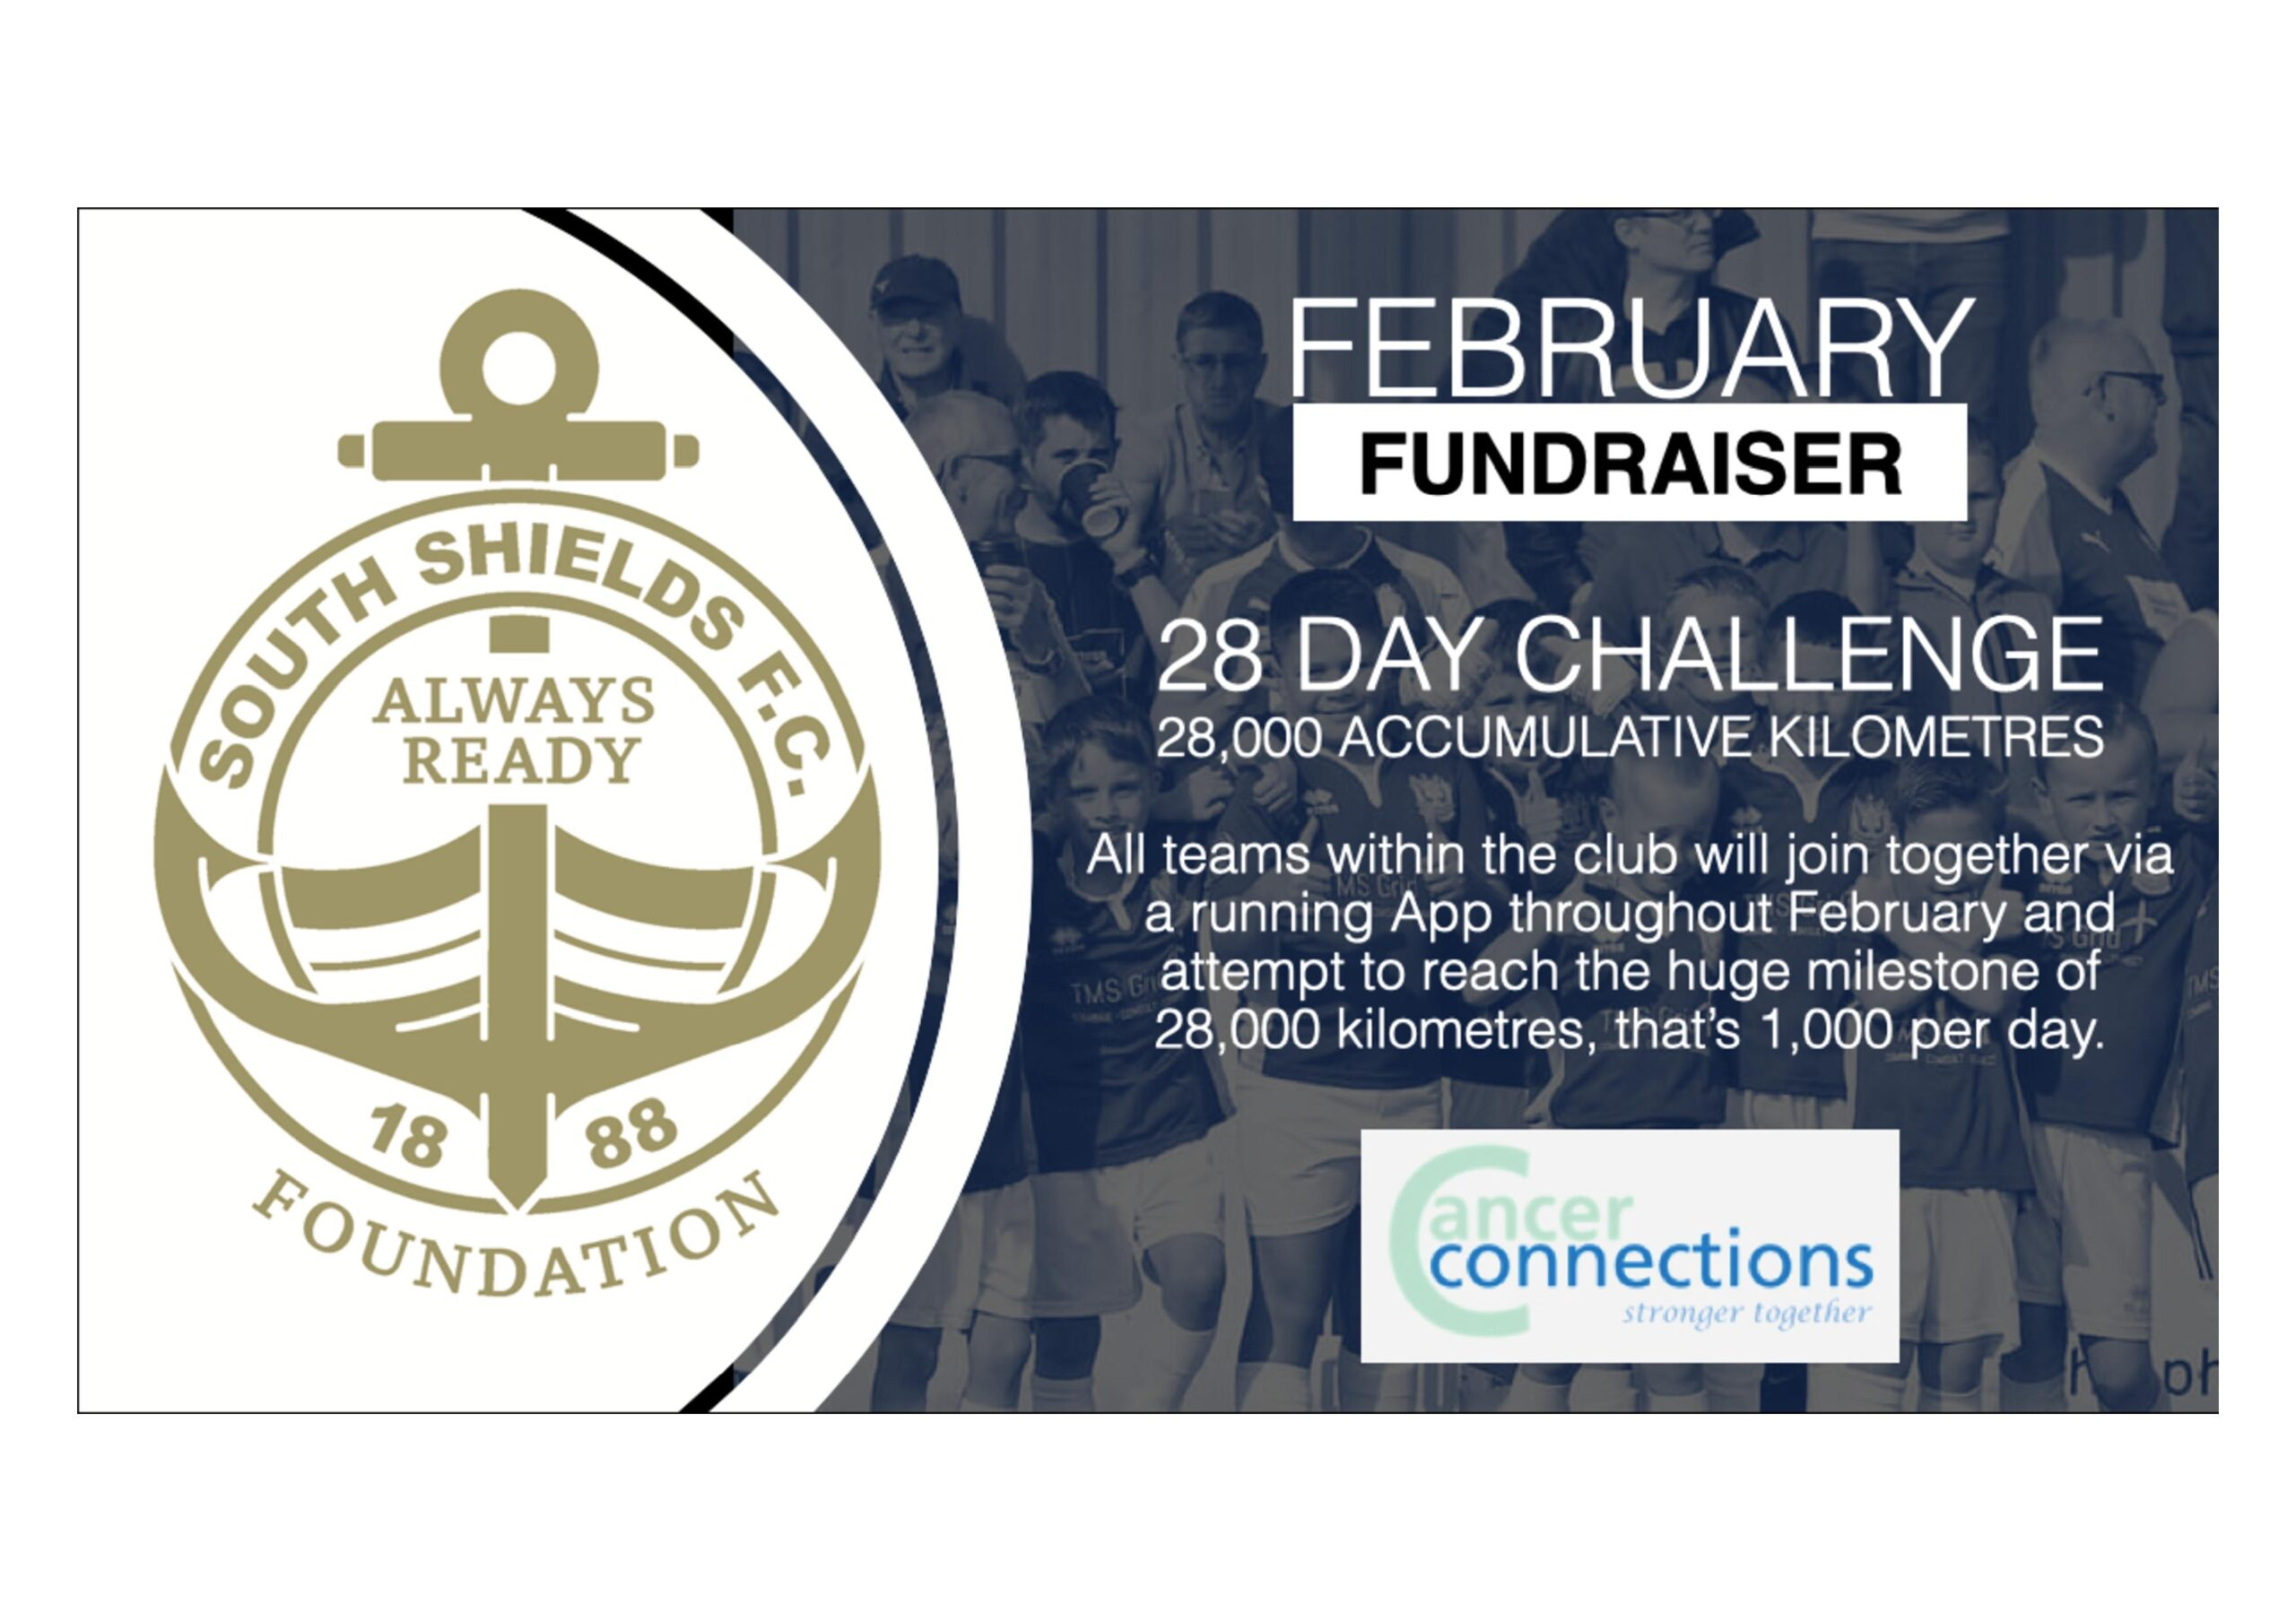 Fantastic response to Foundation's February Fundraiser